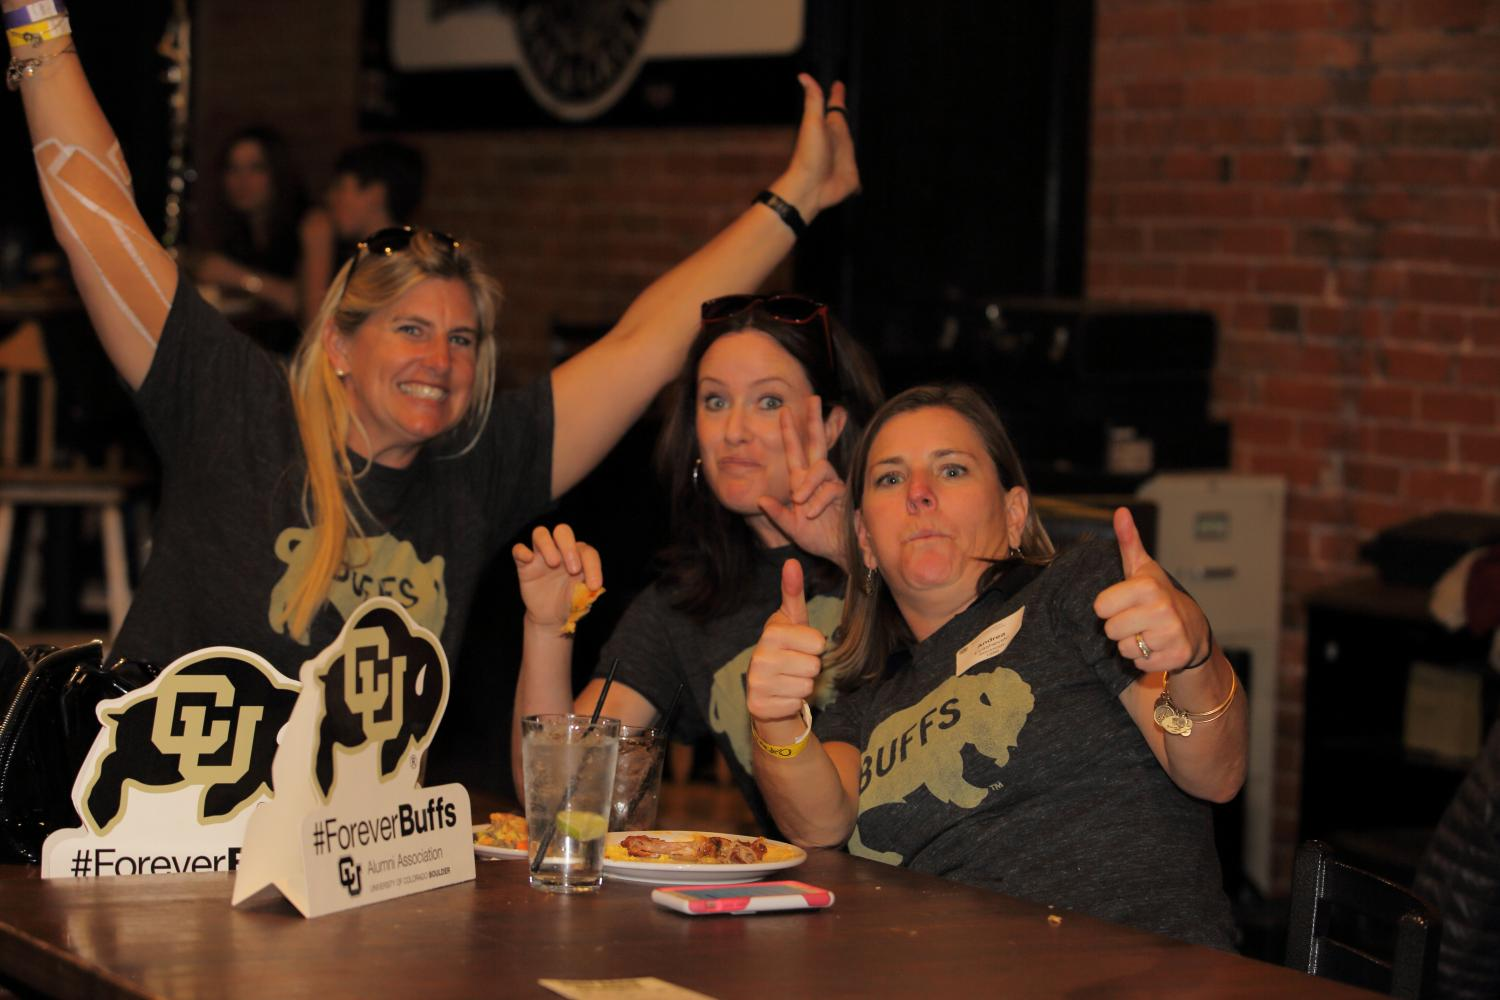 cu buff fans at a watch party